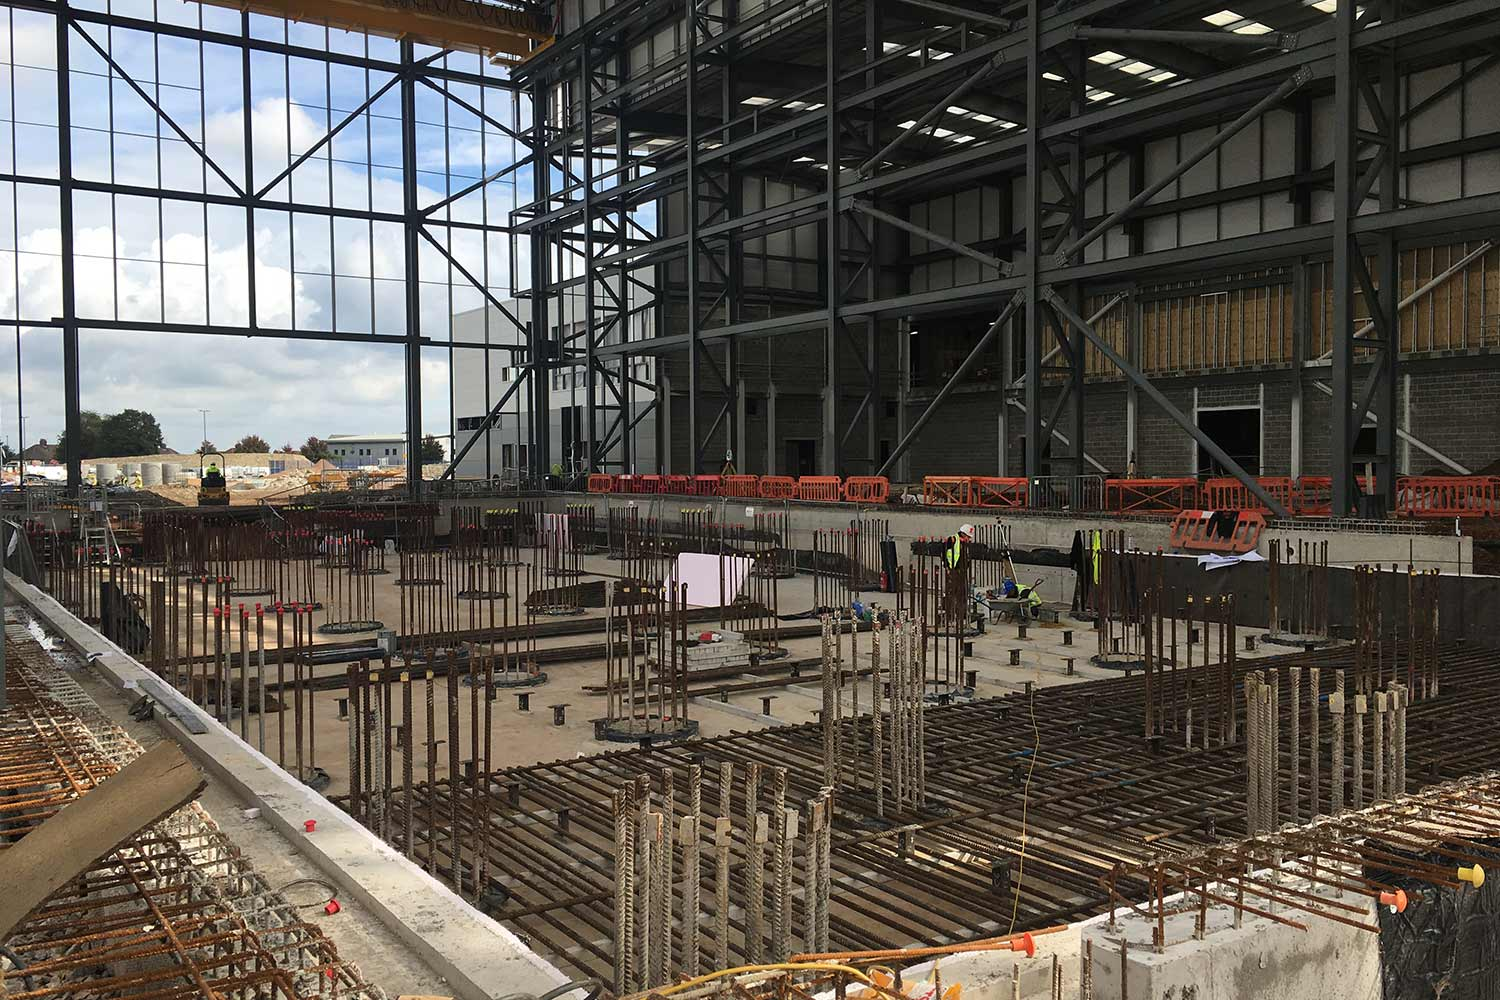 Strong floor foundations for Airbus expansion